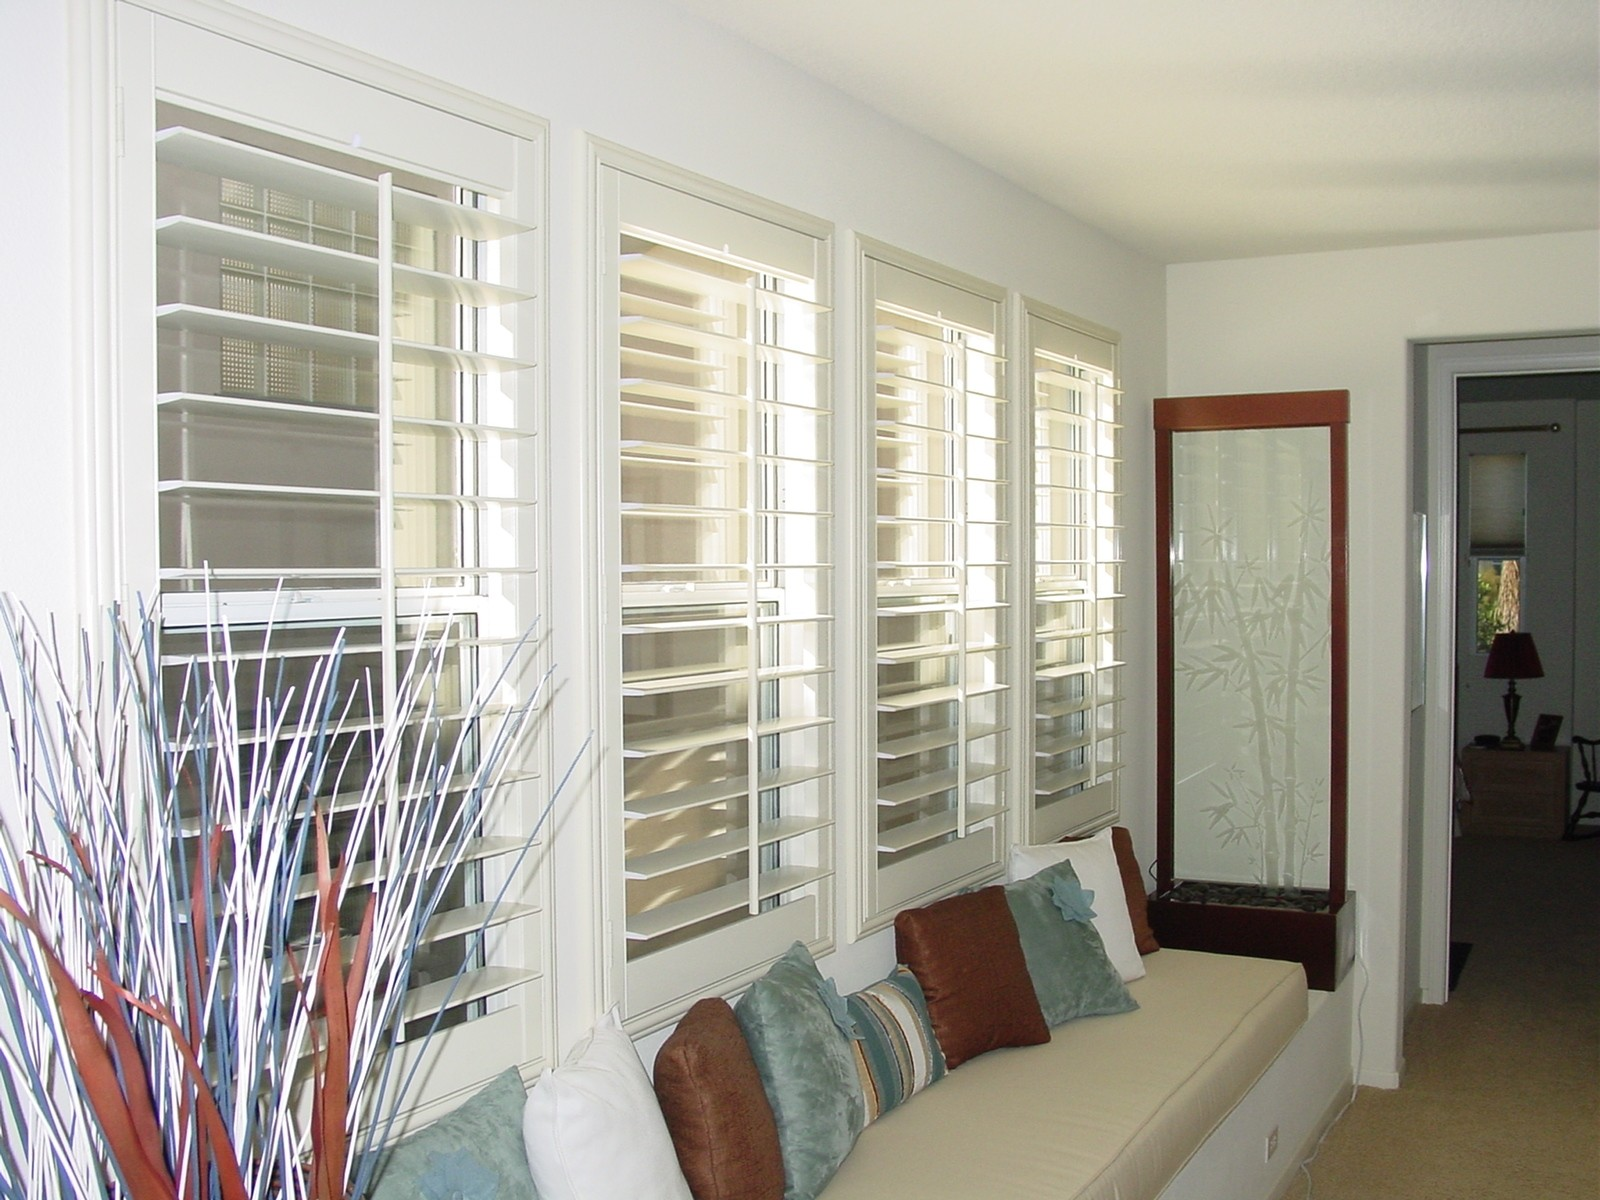 window shutter in white color a long bench under the windows with light cream mattress and - Plantation Shutters Cost